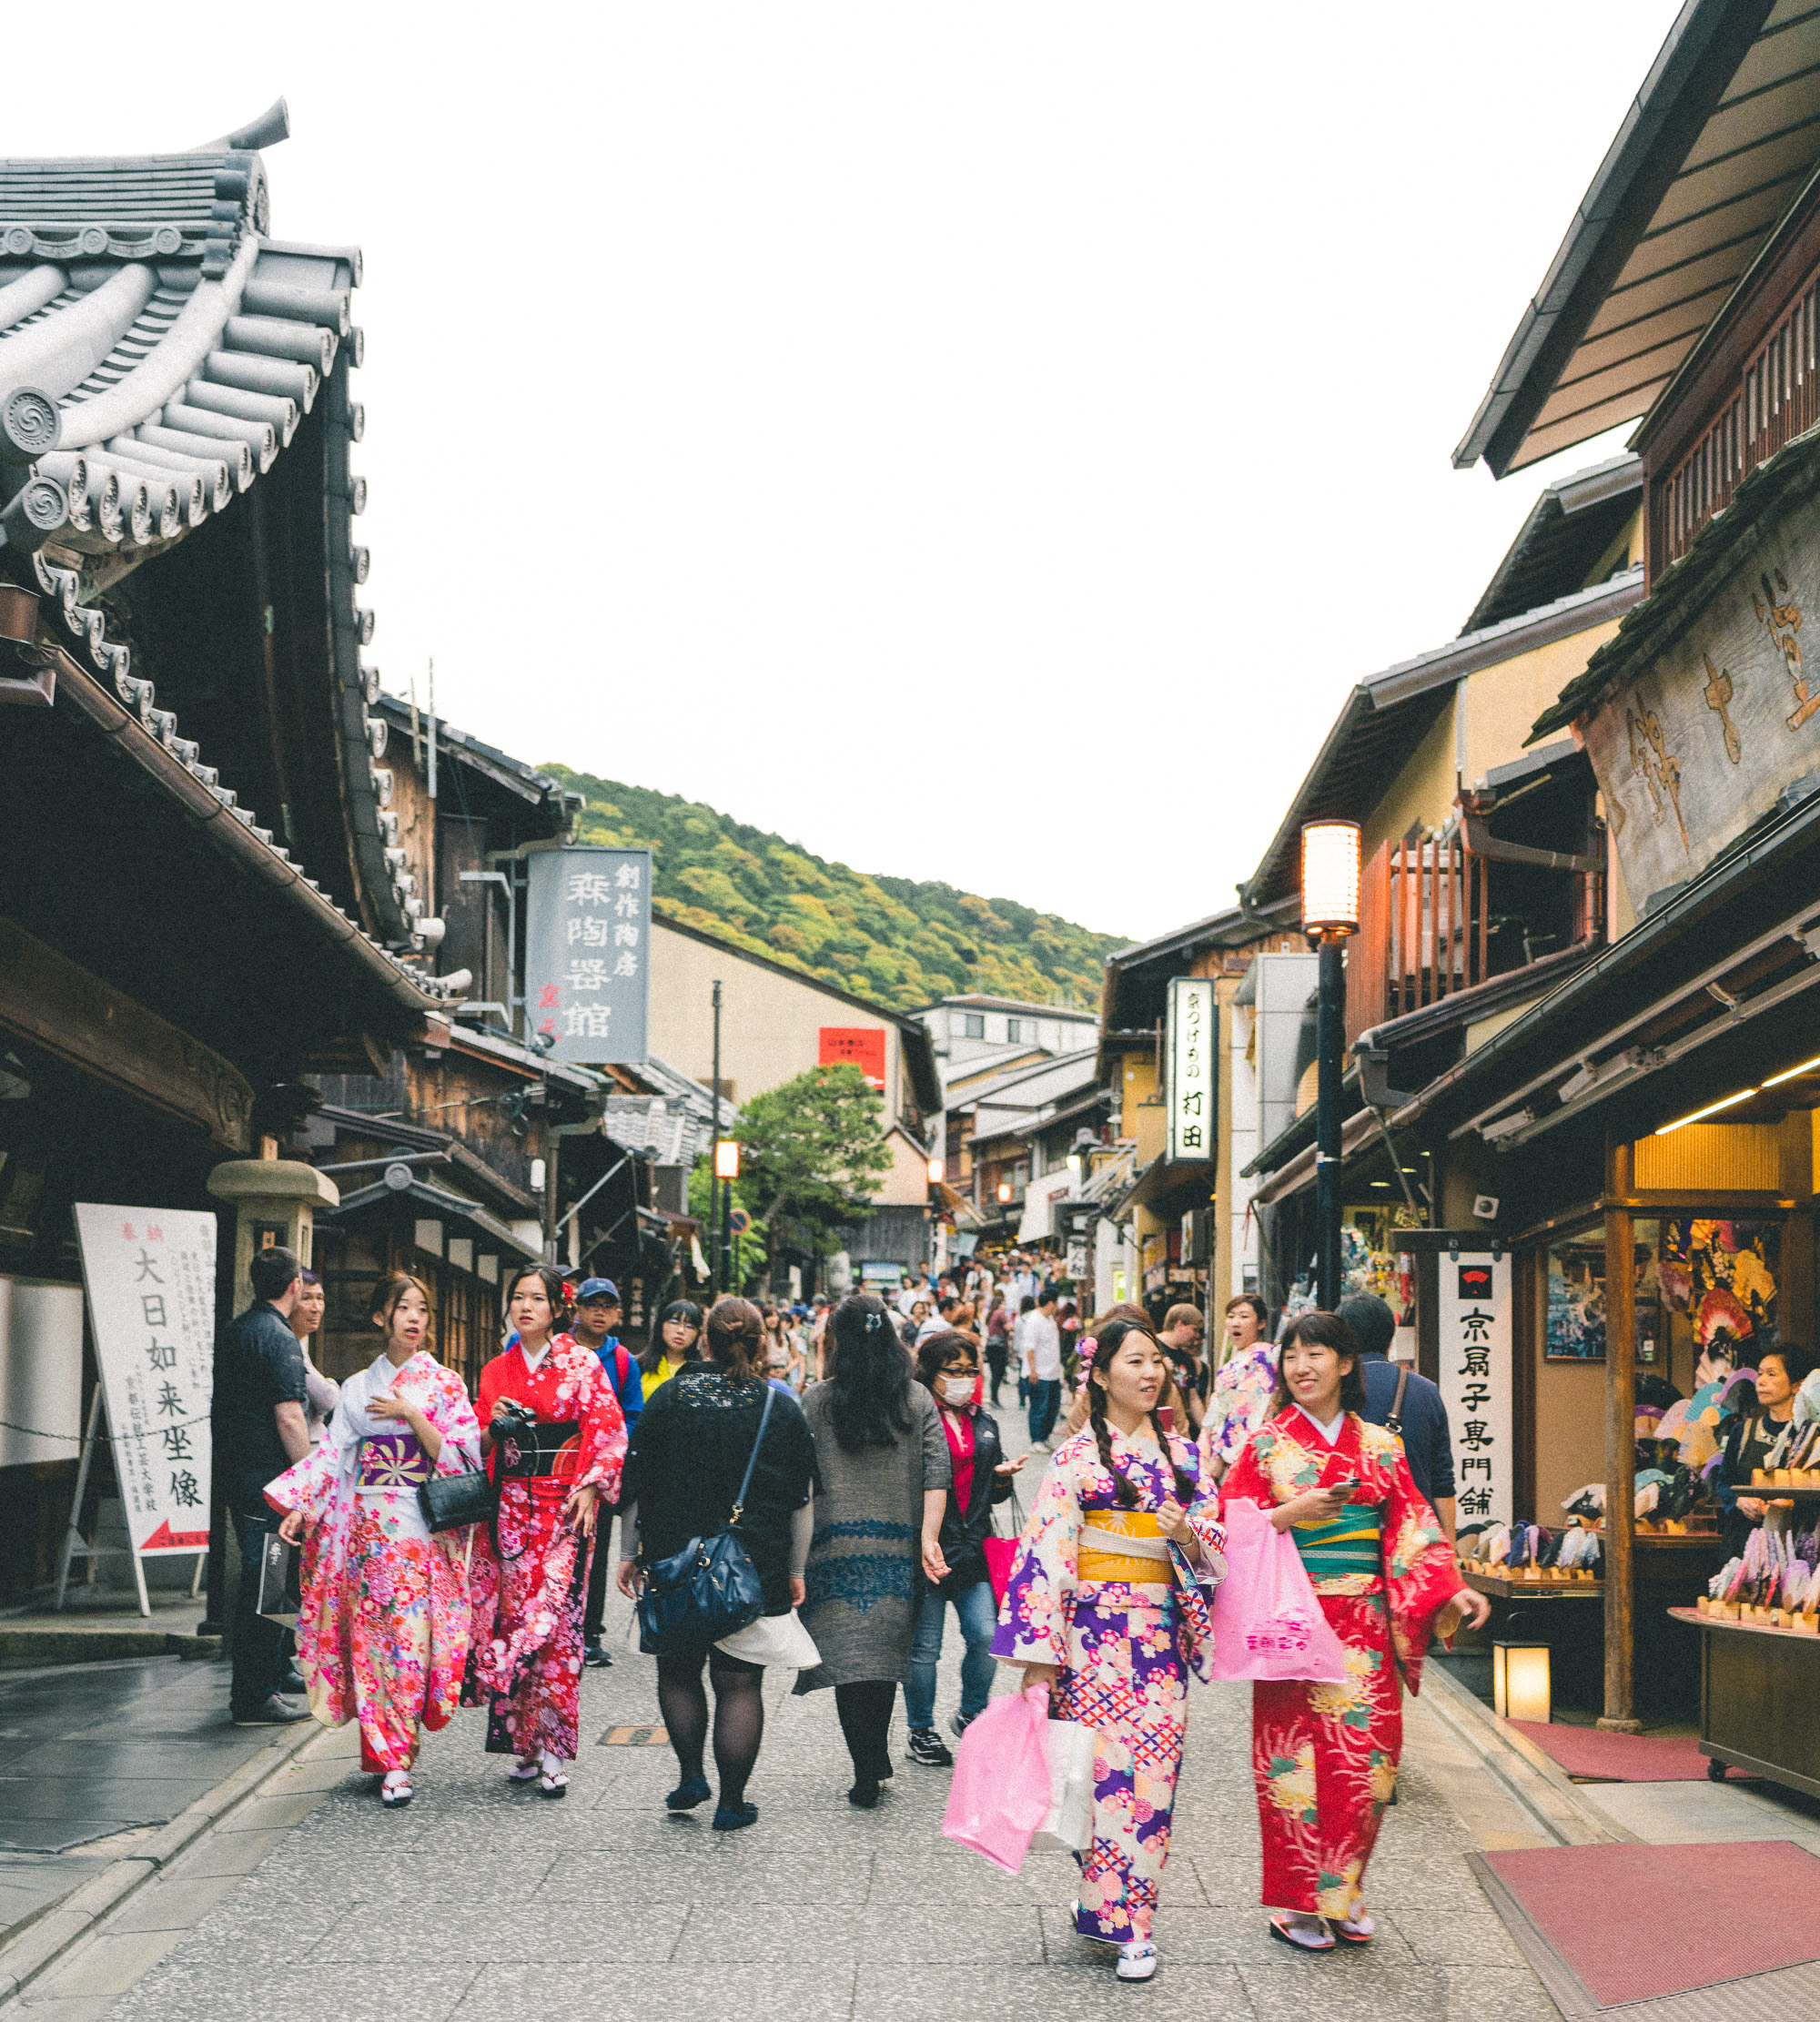 Matsubara Dori walking street below Kiyomizu-dera Temple in Kyoto, Japan | 24 Hour Guide to Kyoto, Japan | 1 Day Guide Kyoto | Kyoto City Guide | Kyoto Travel Itinerary